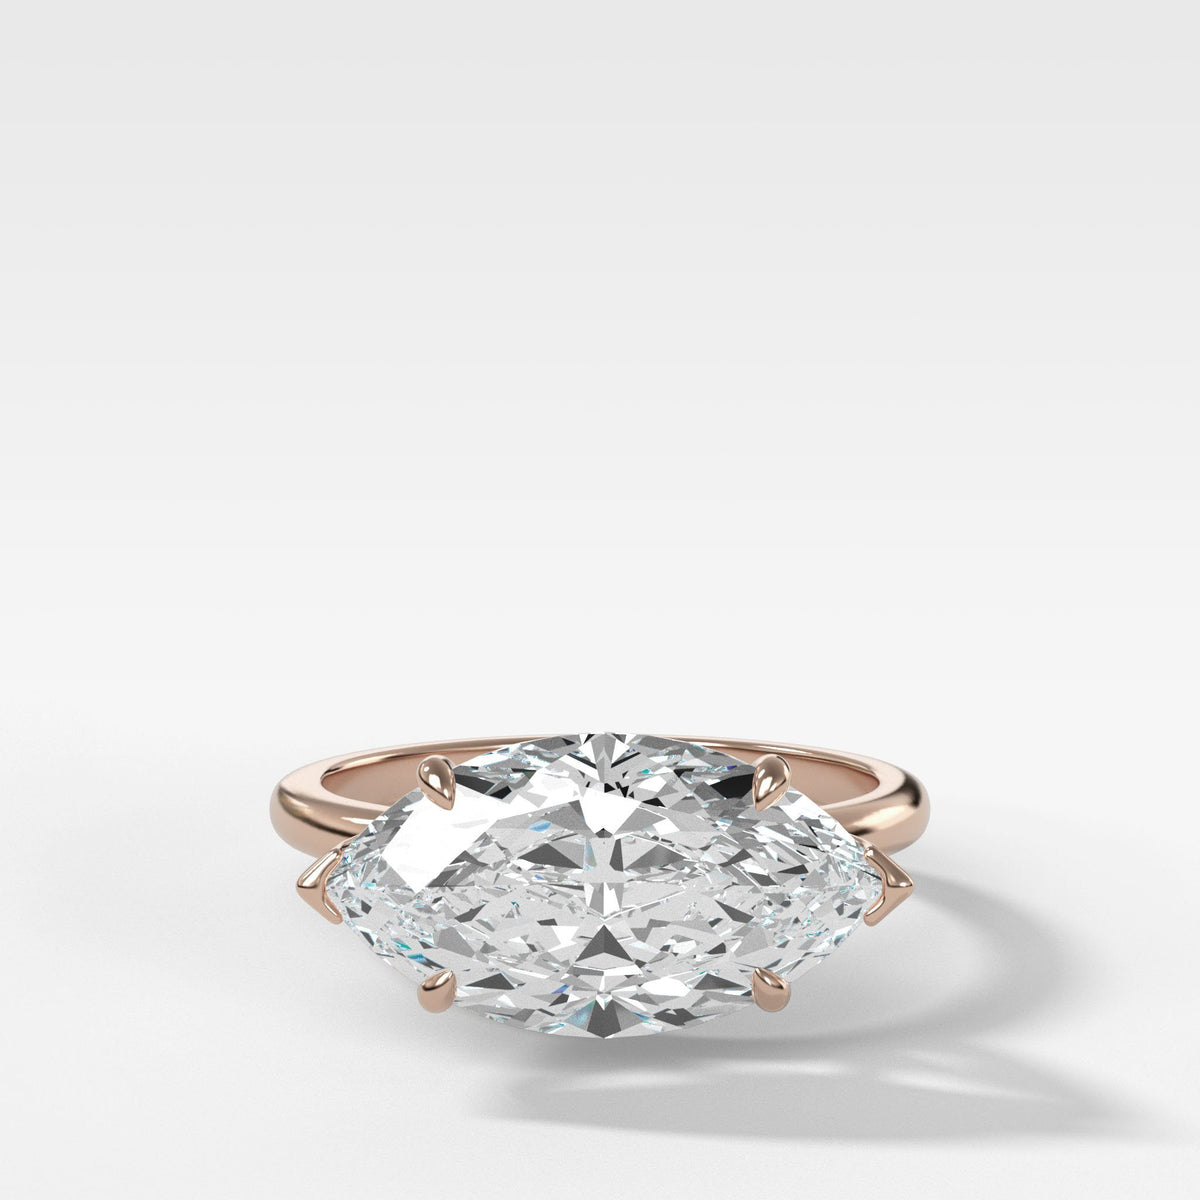 Crescent Solitaire With Marquise Cut in Rose Gold by Good Stone